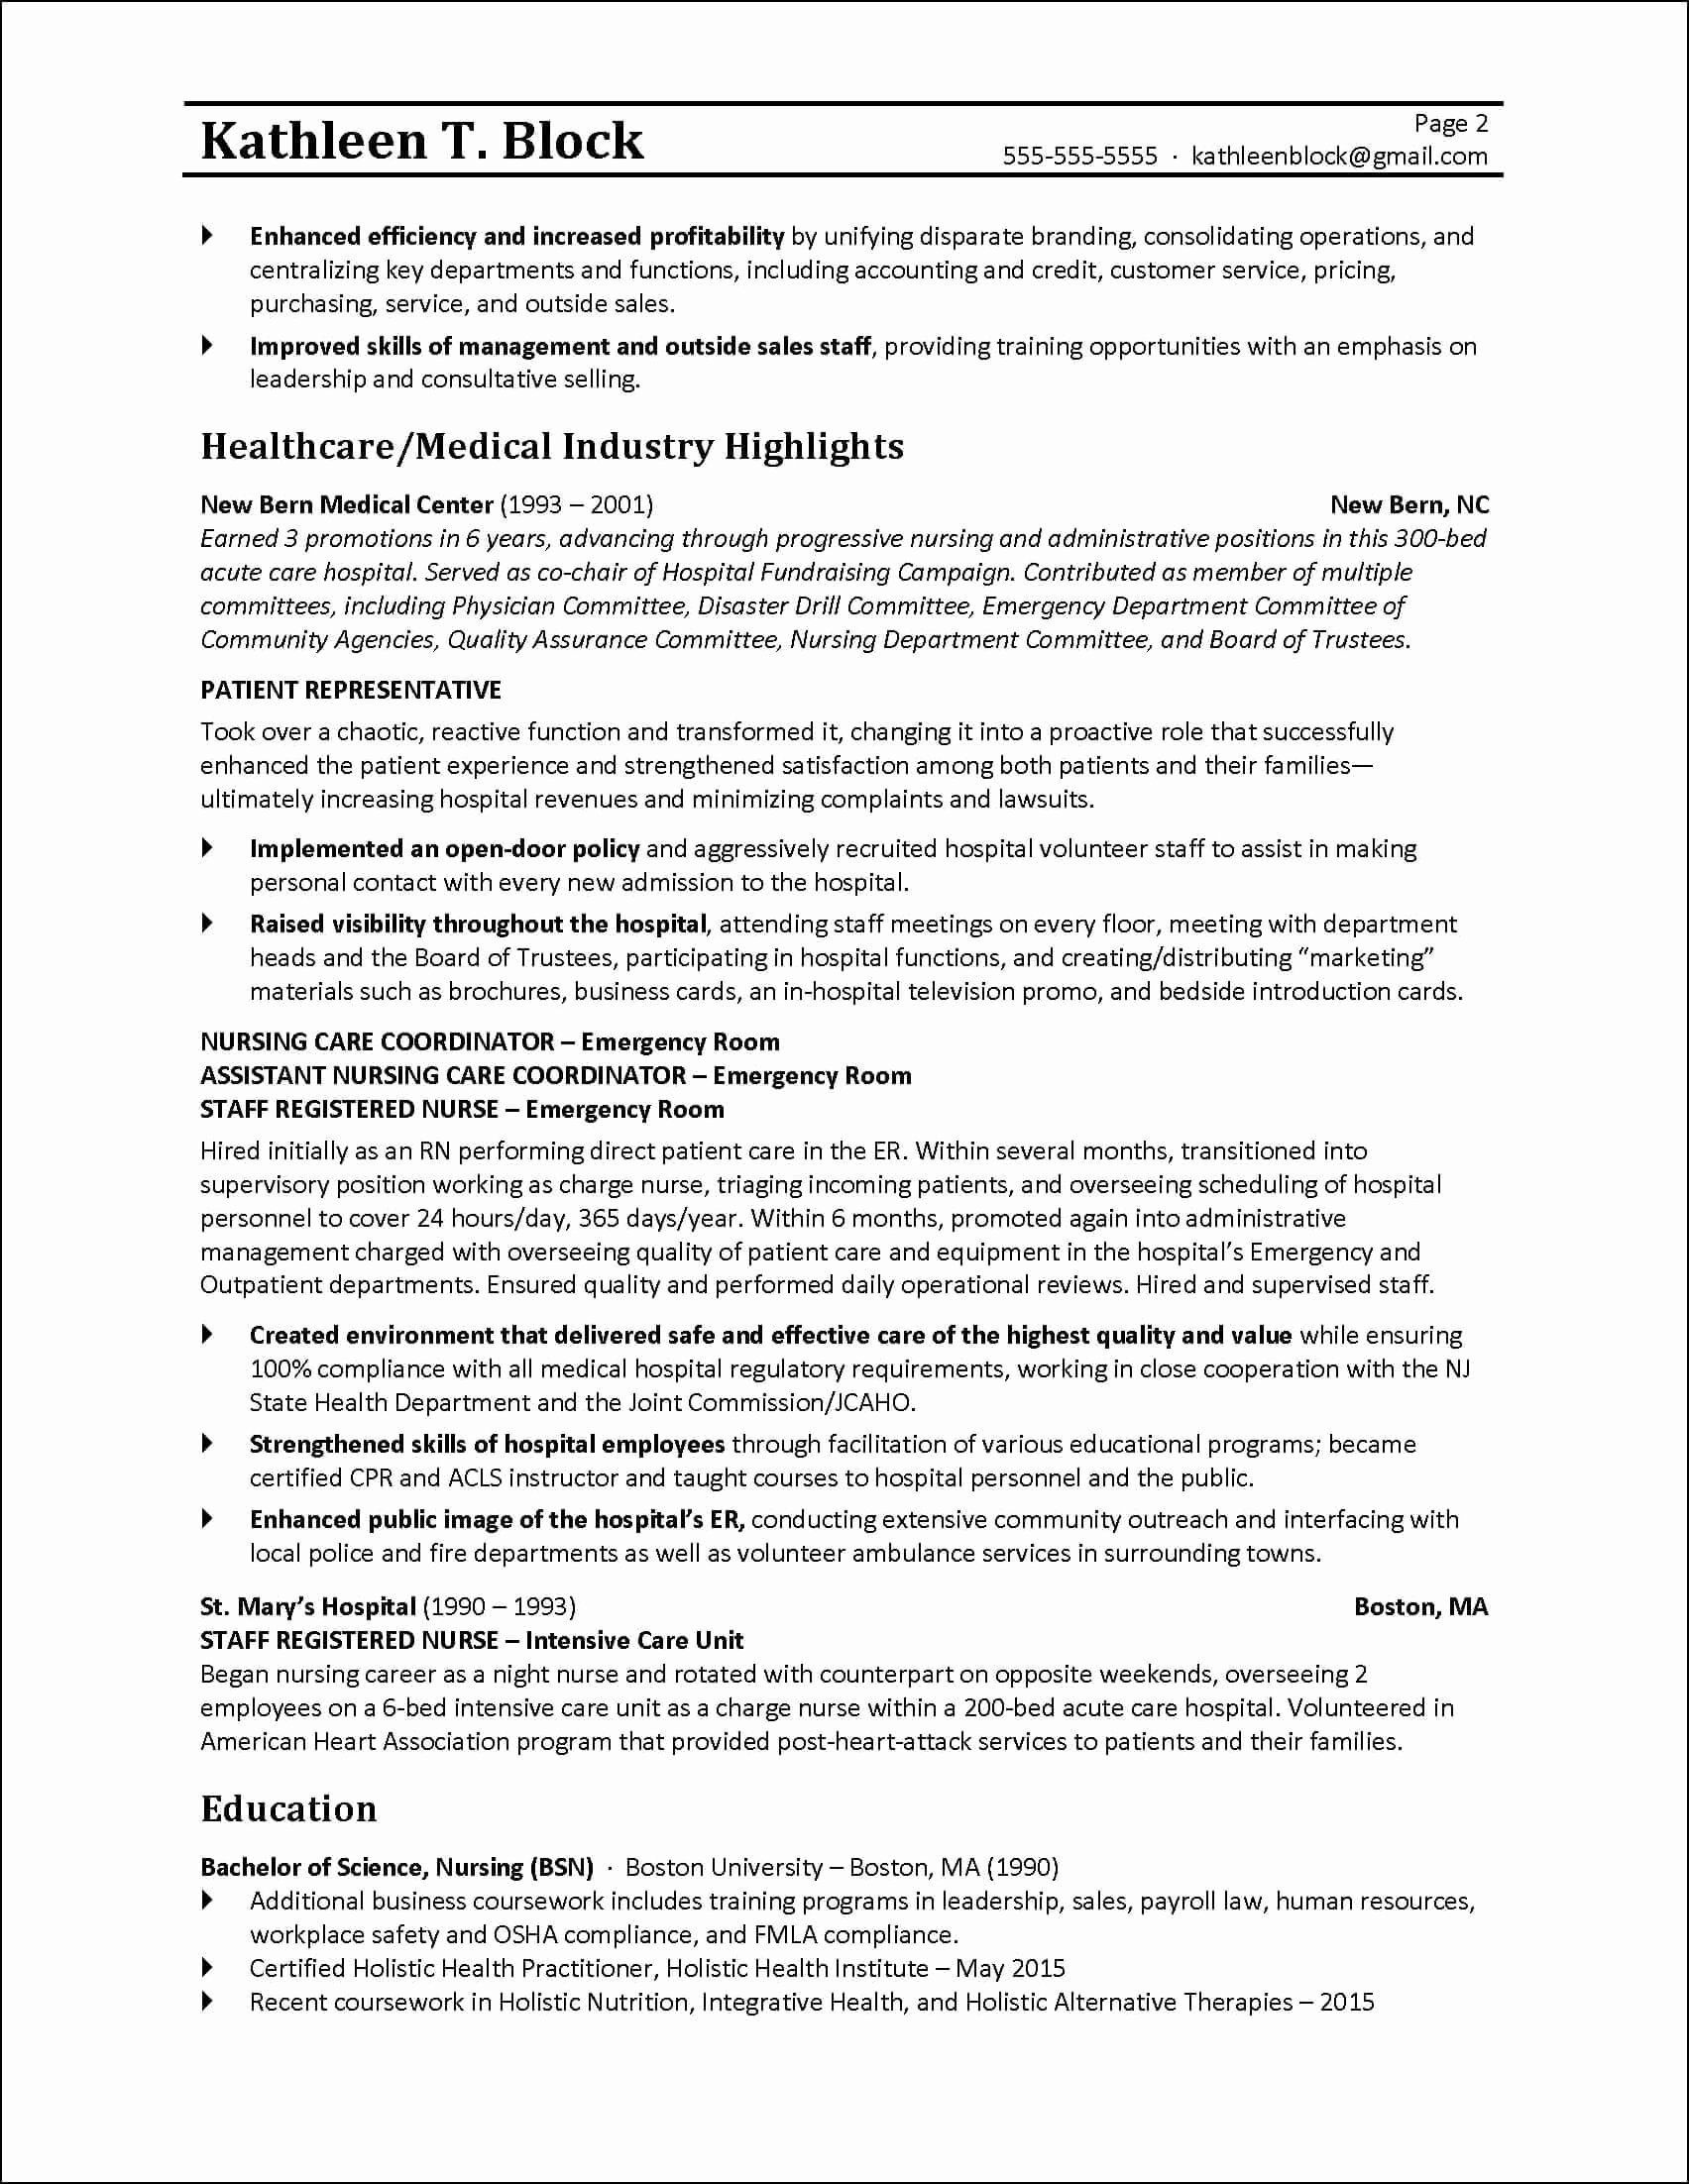 Small business owner resume awesome resume tips for former